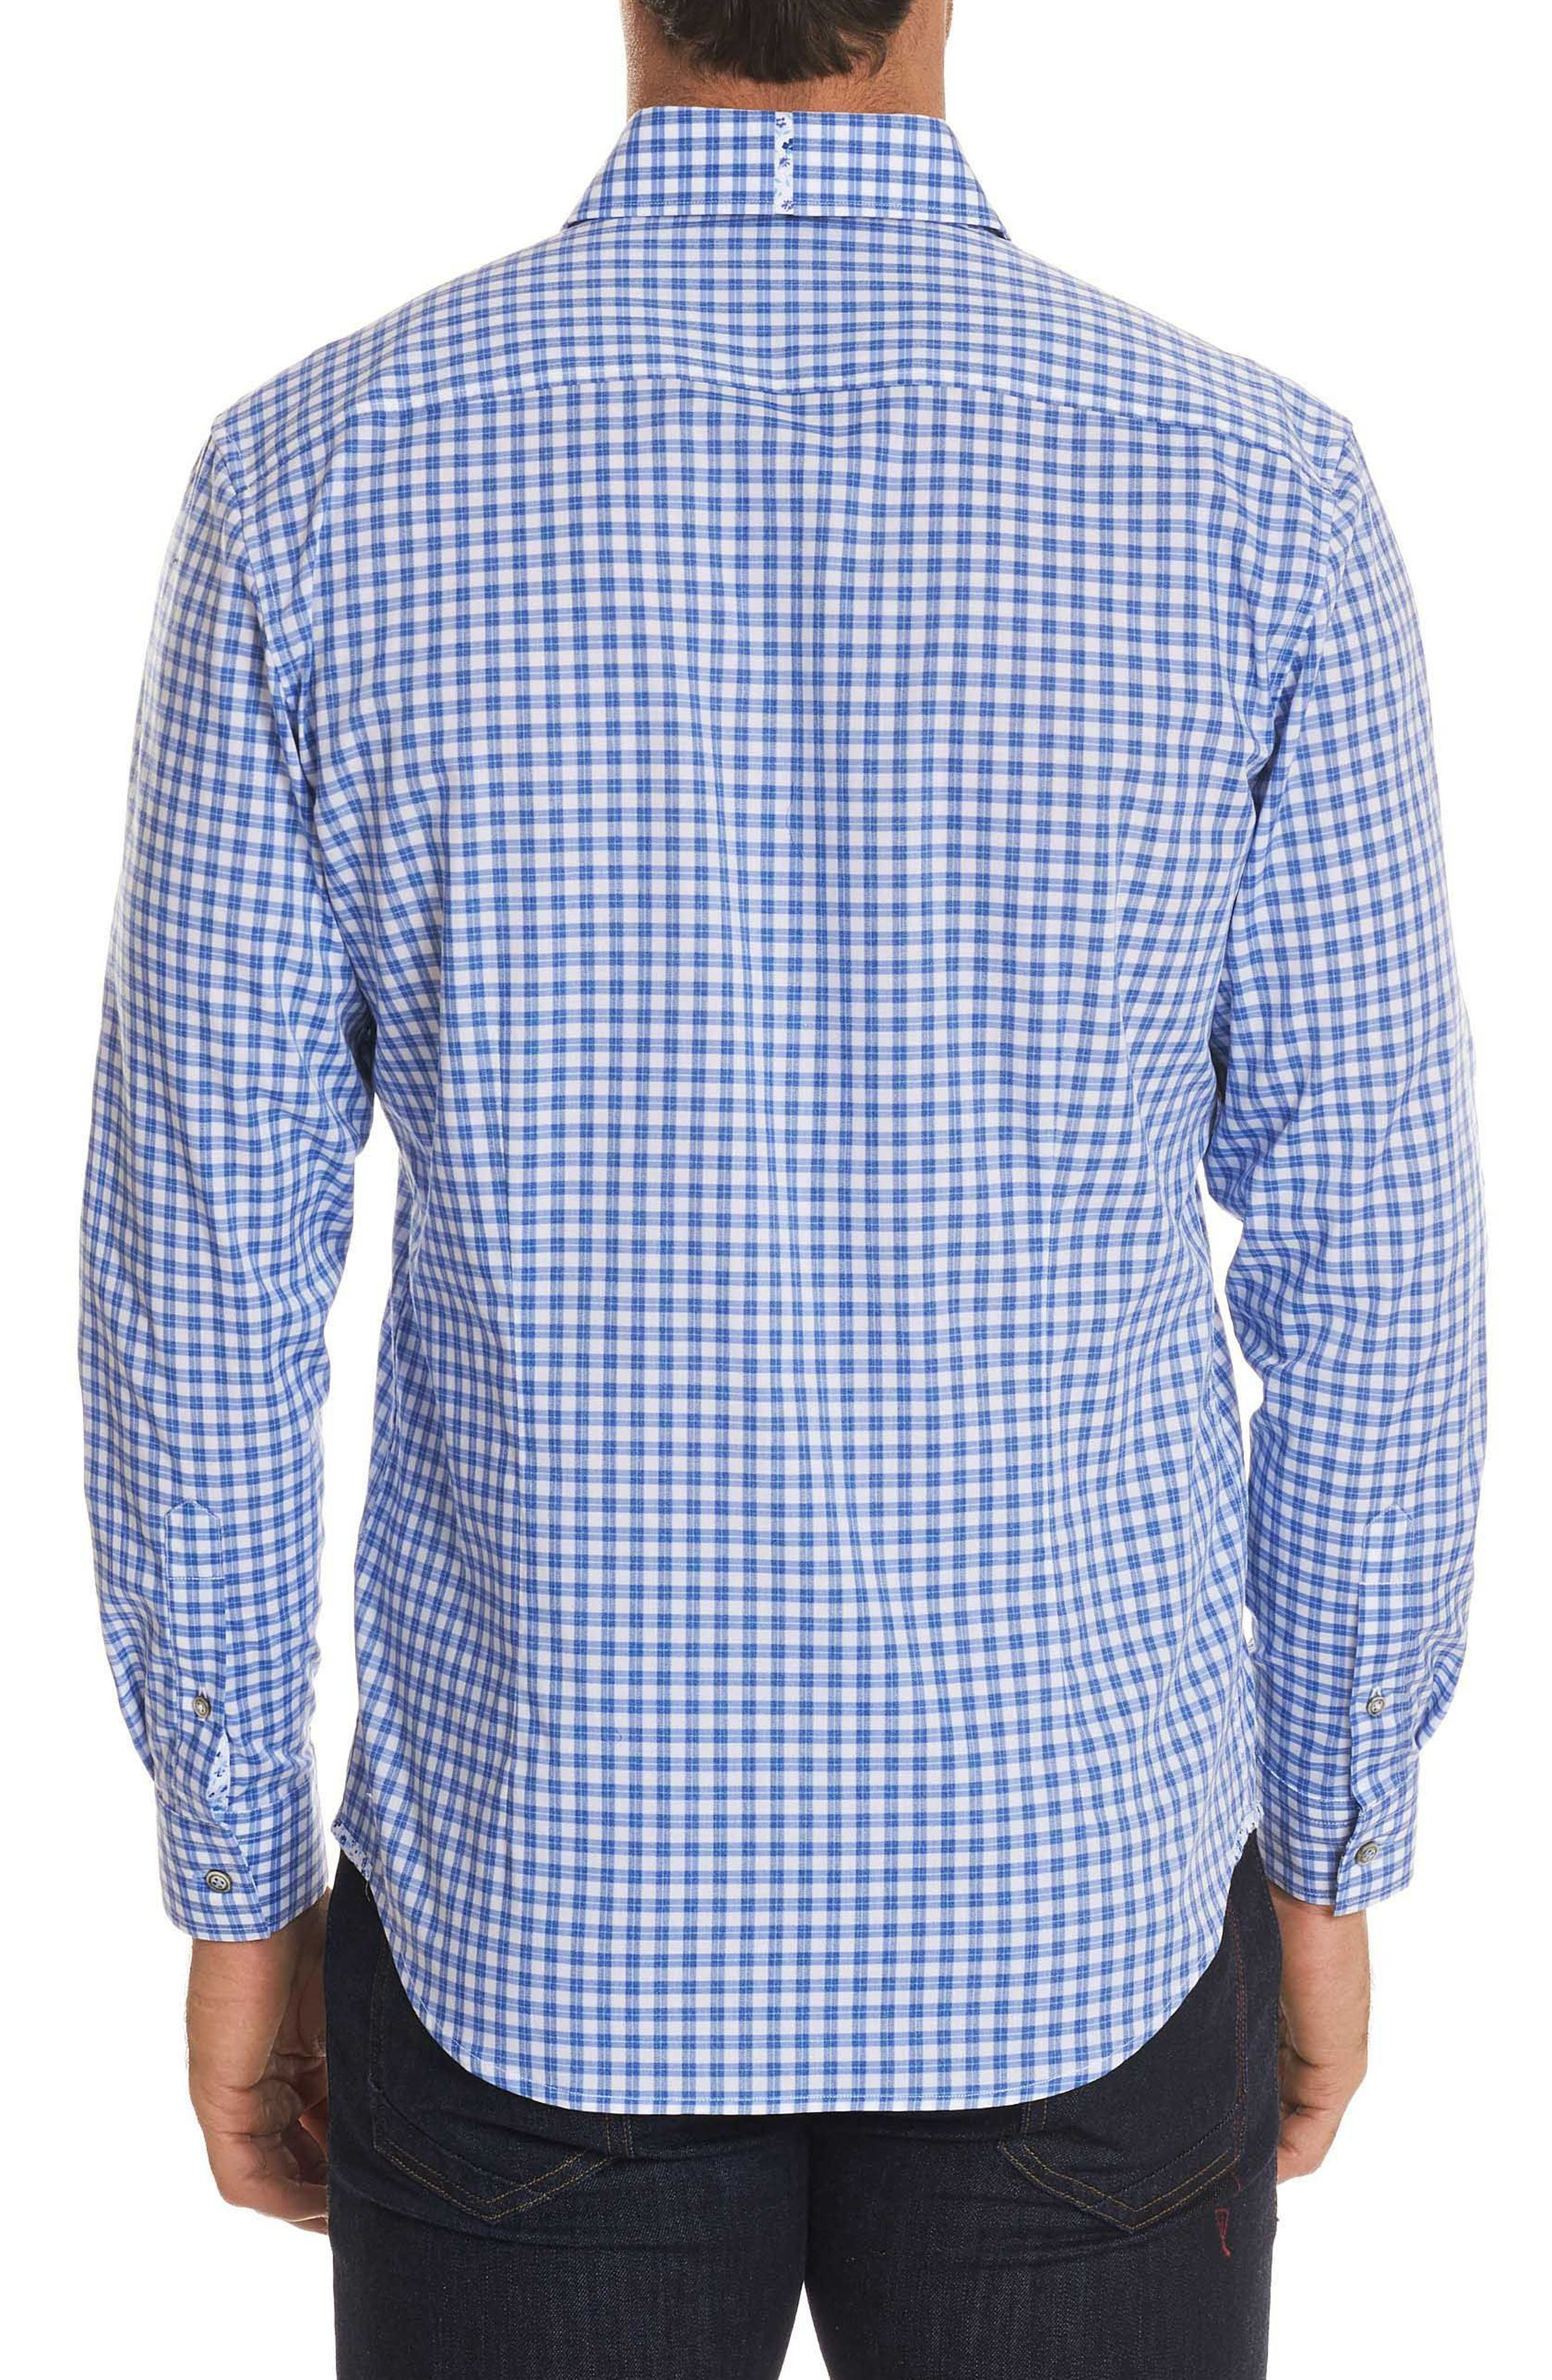 Rye Tailored Fit Check Sport Shirt,                             Alternate thumbnail 2, color,                             Blue